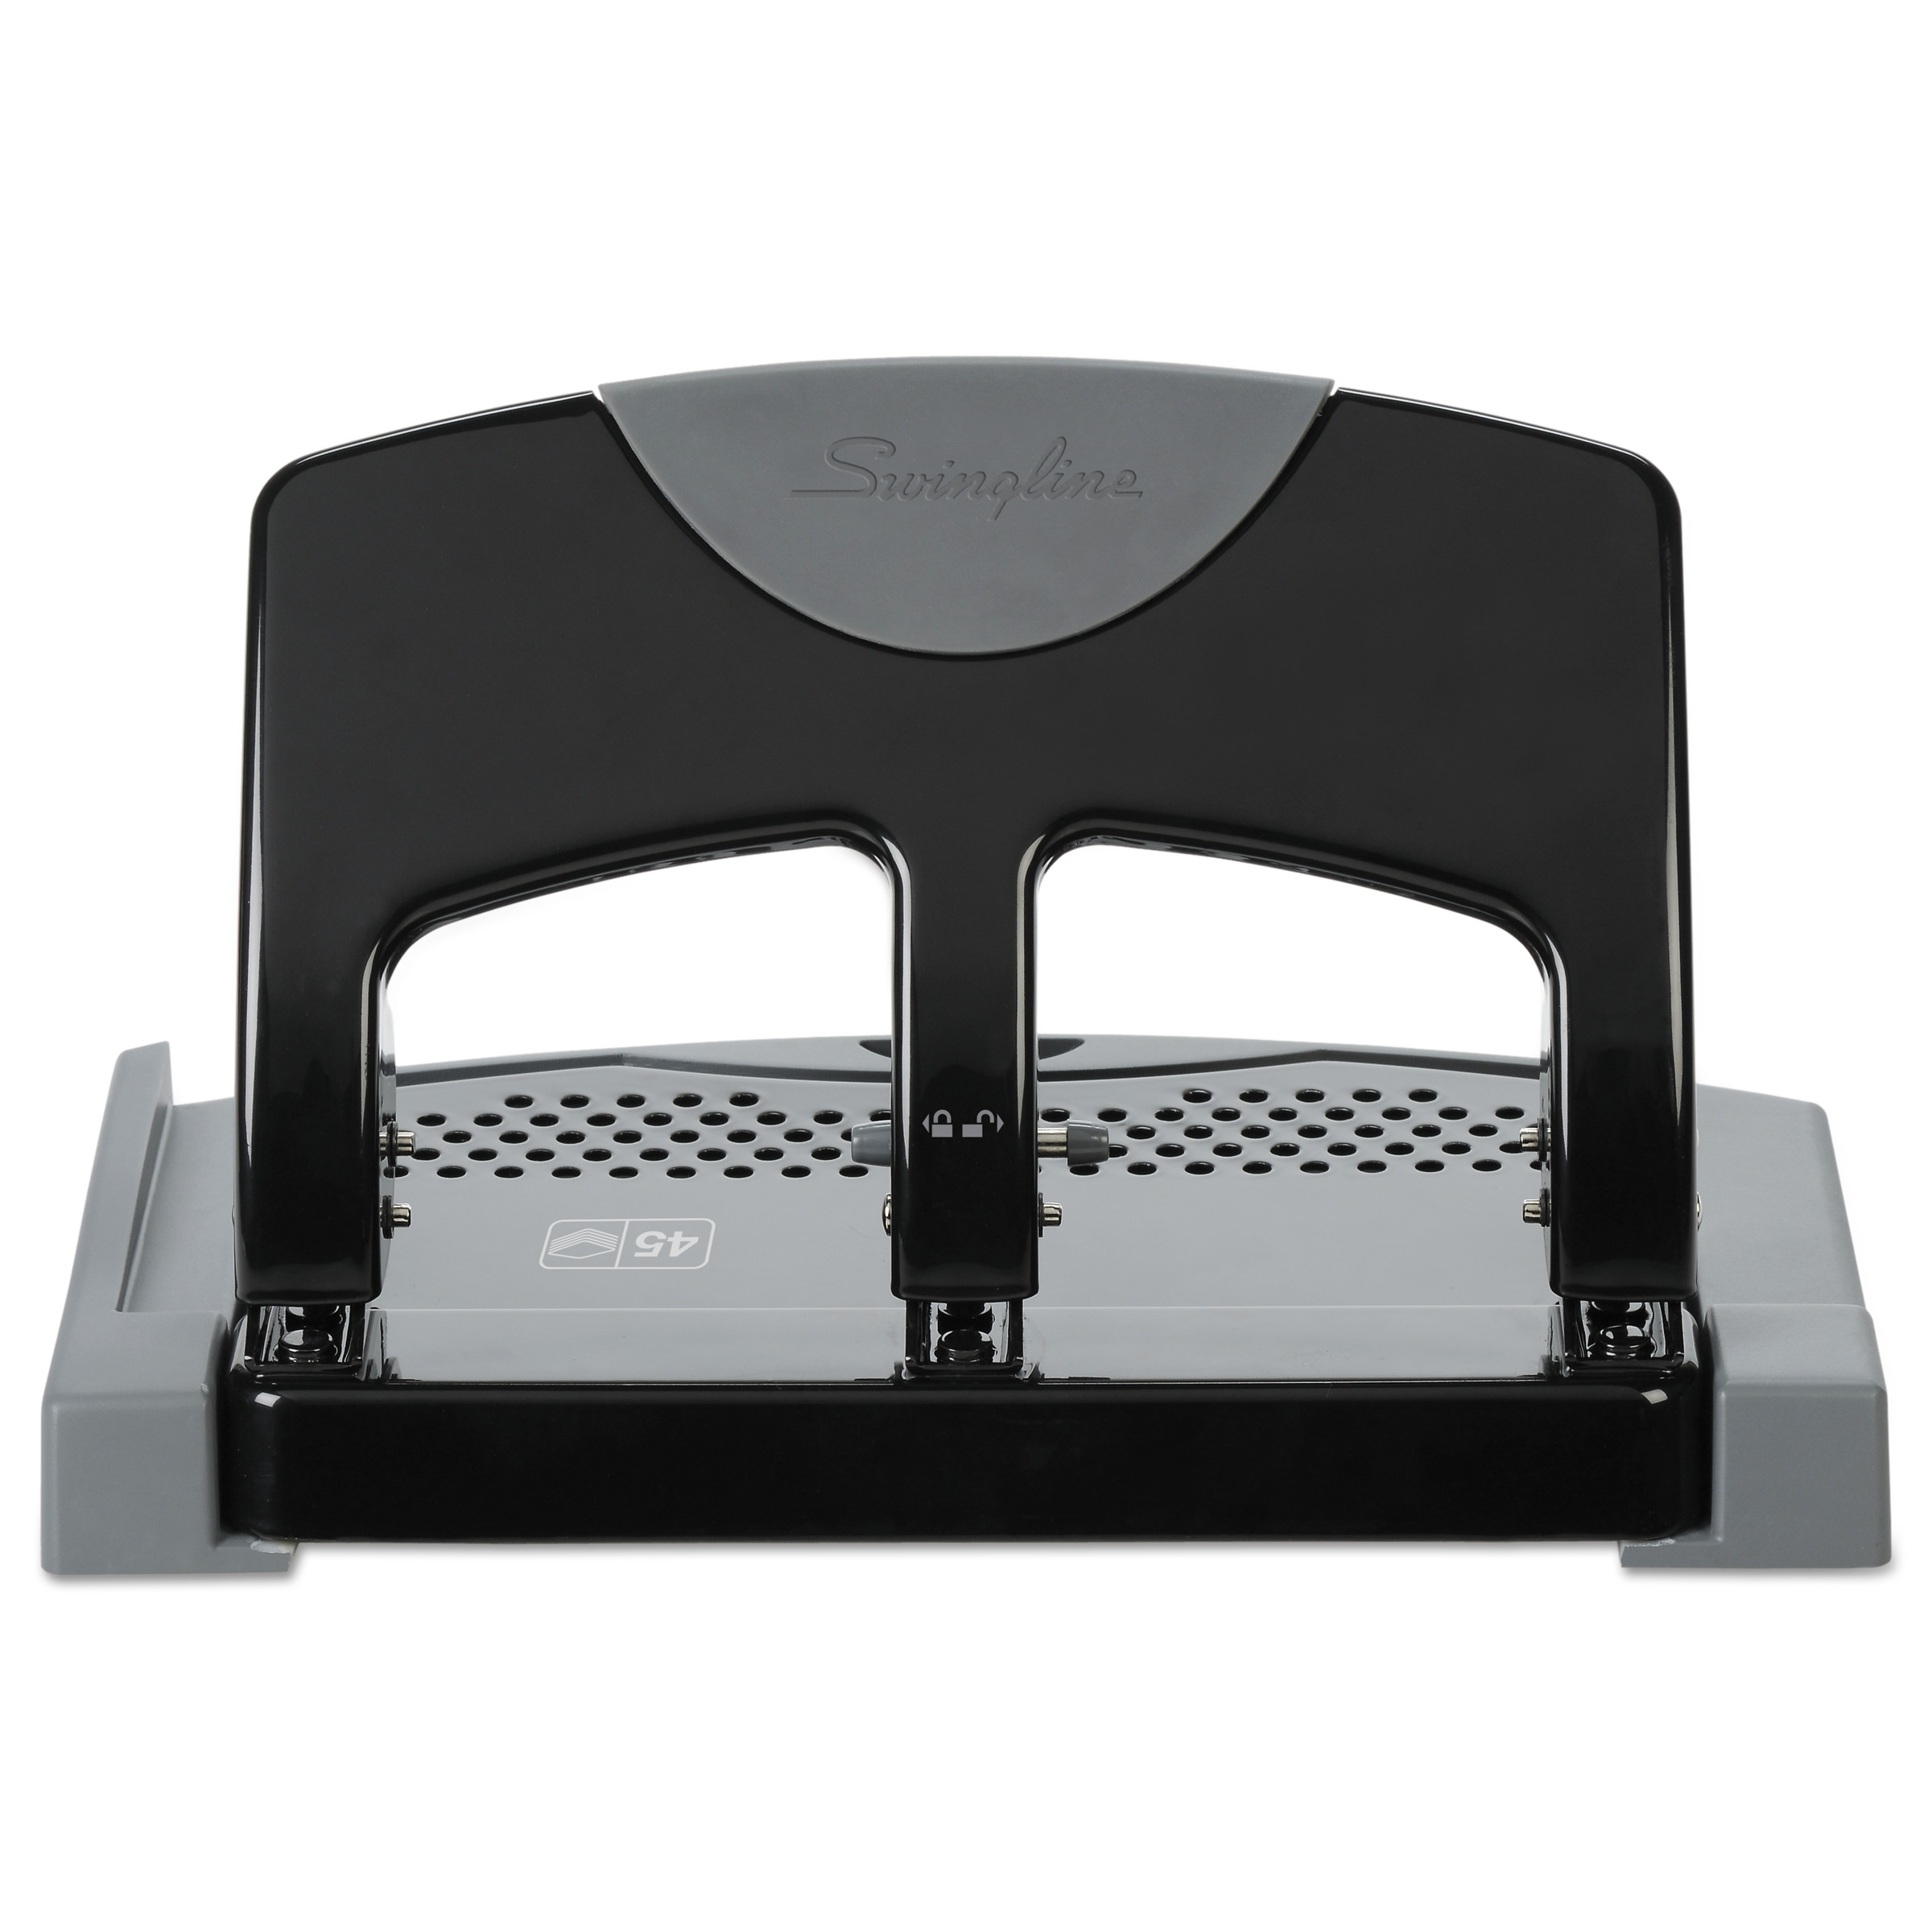 "Swingline 45-Sheet SmartTouch Three-Hole Punch, 9/32"" Holes, Black/Gray"